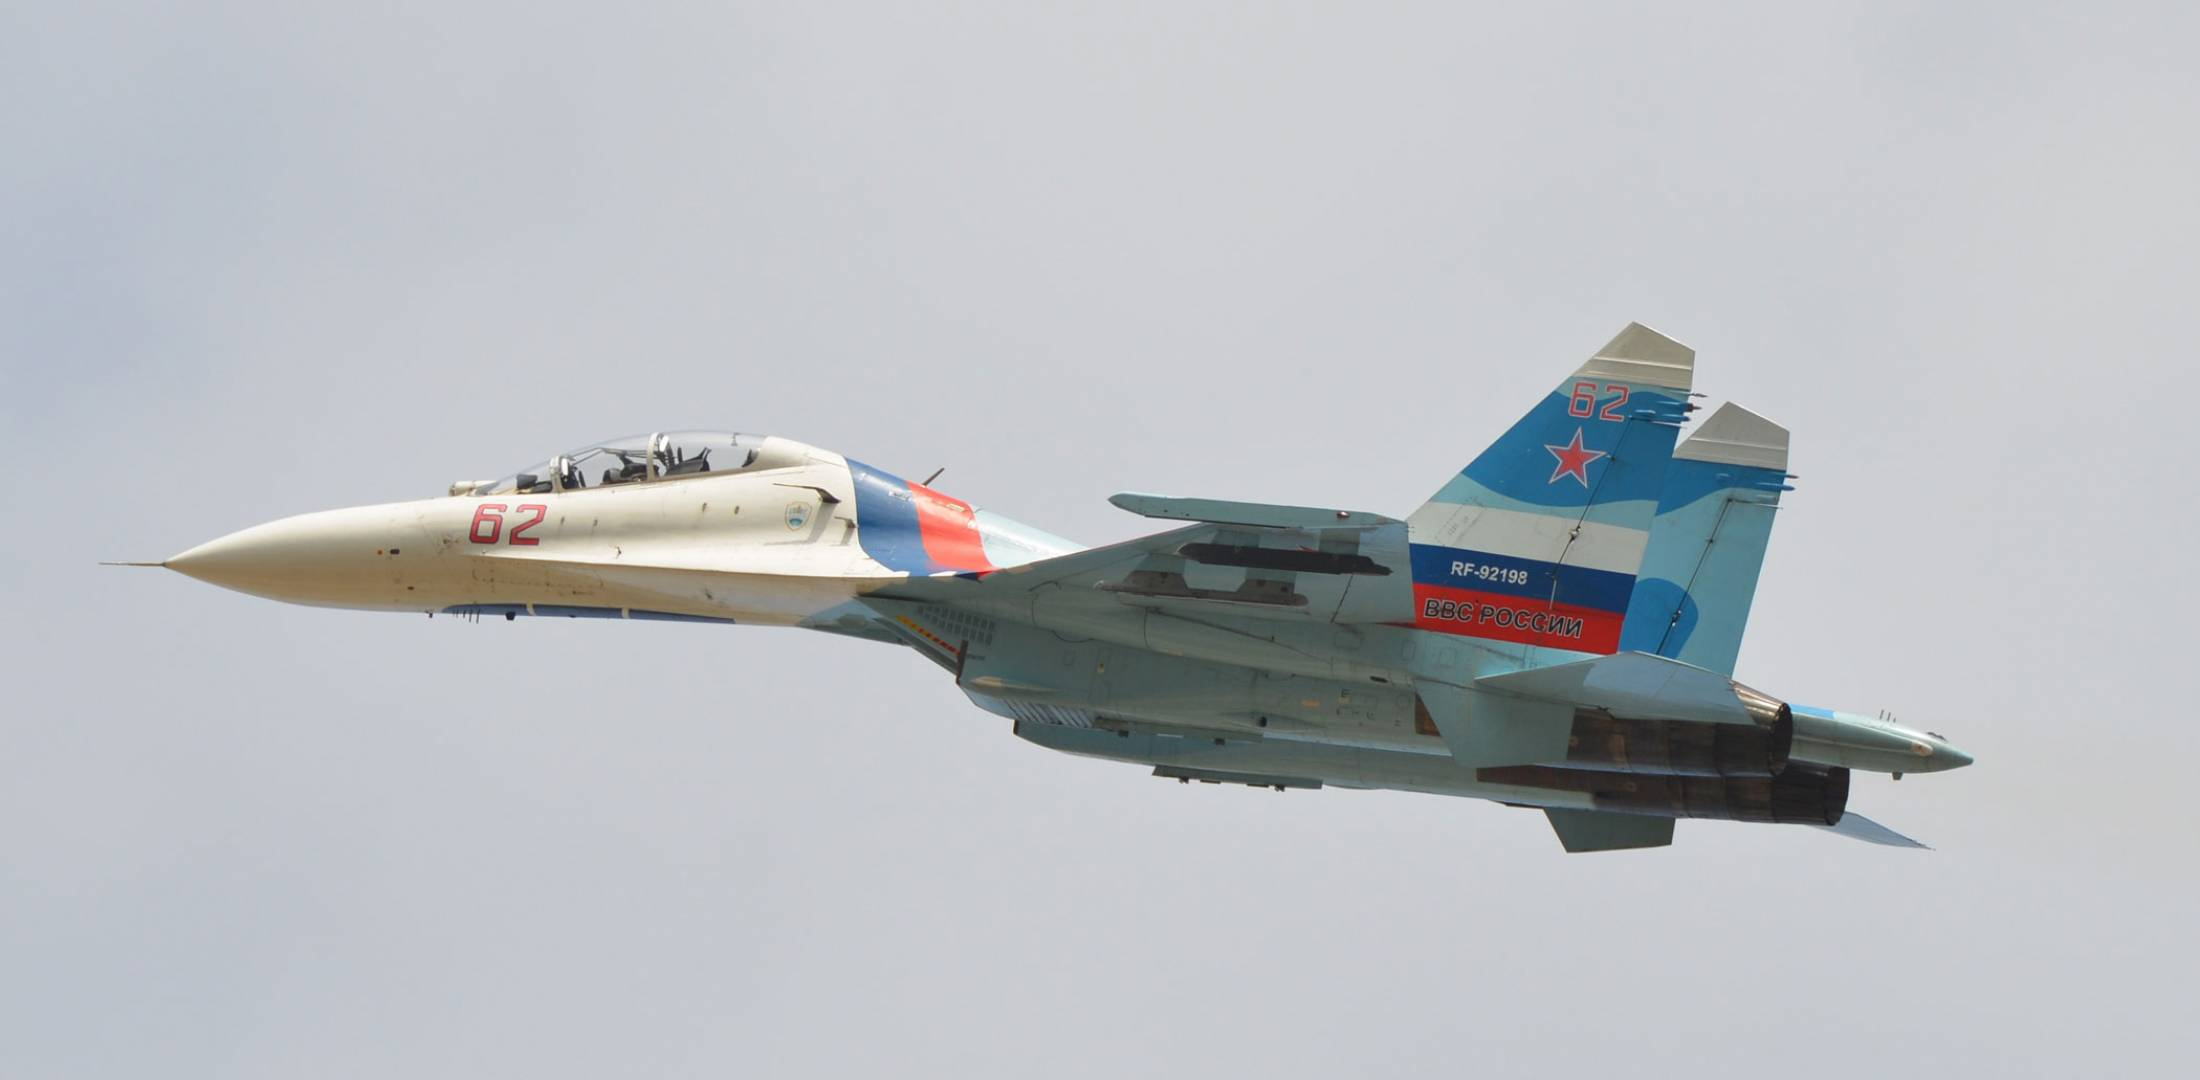 Sukhoi Su-30M2 in flight